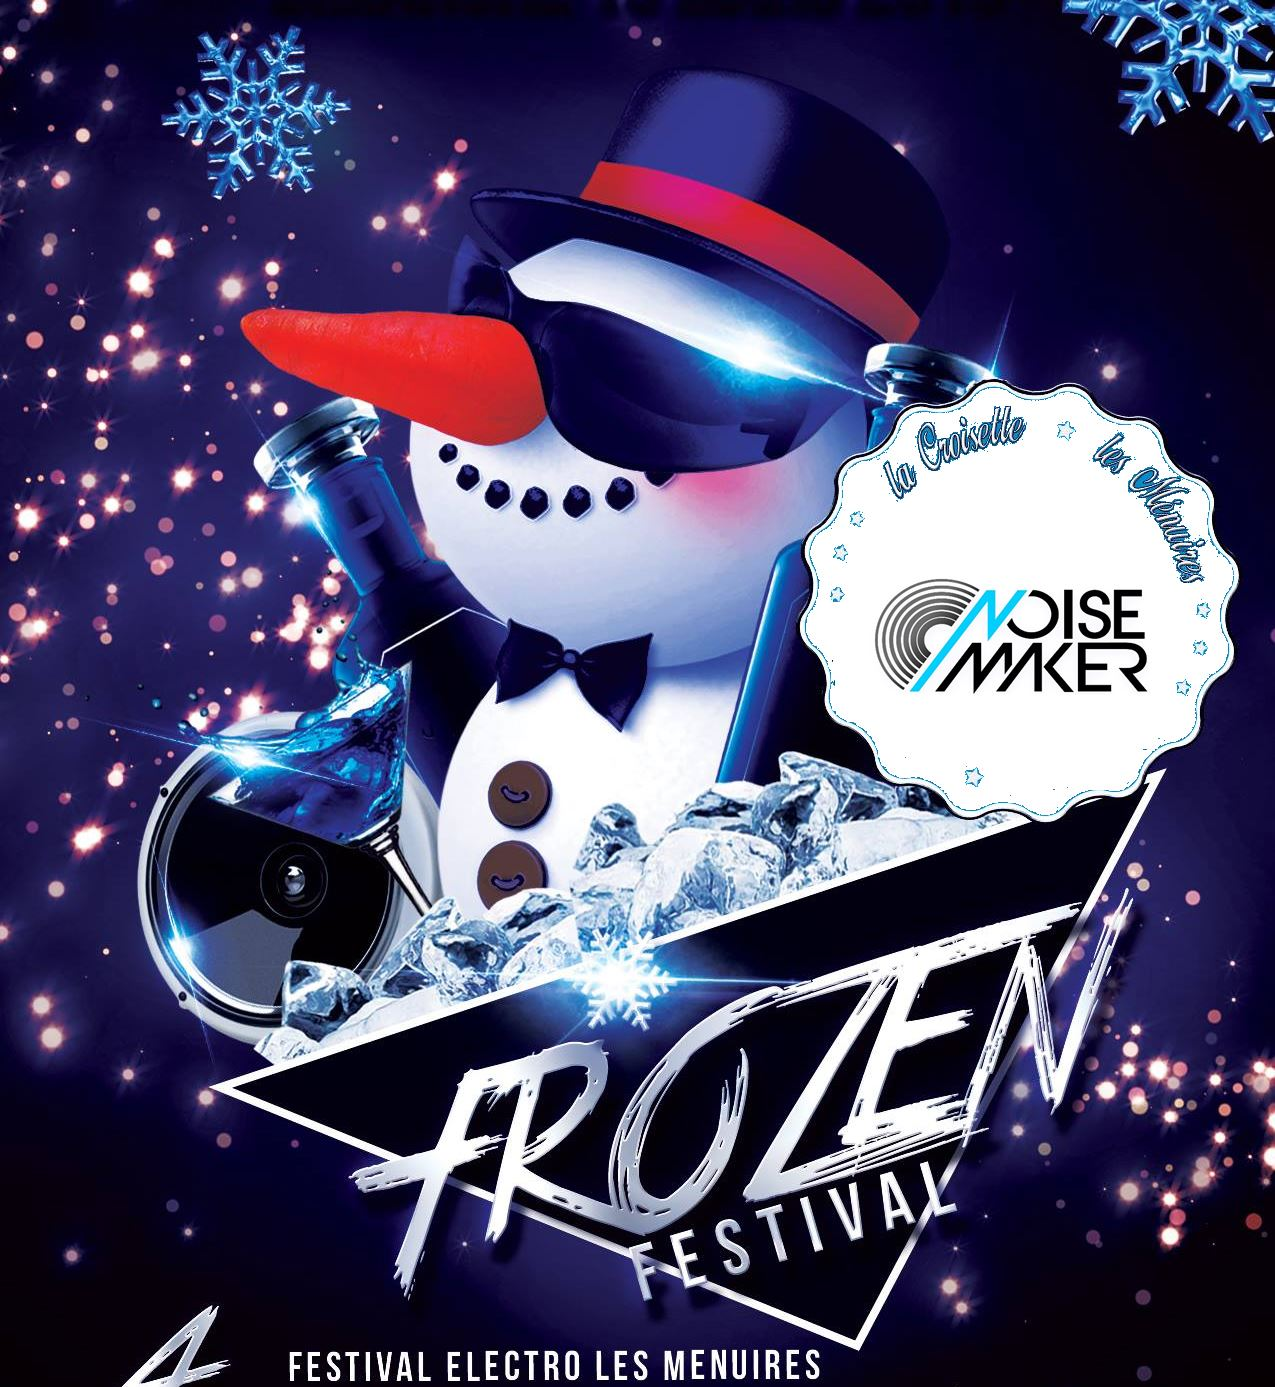 FrozenFestival Electro 2017